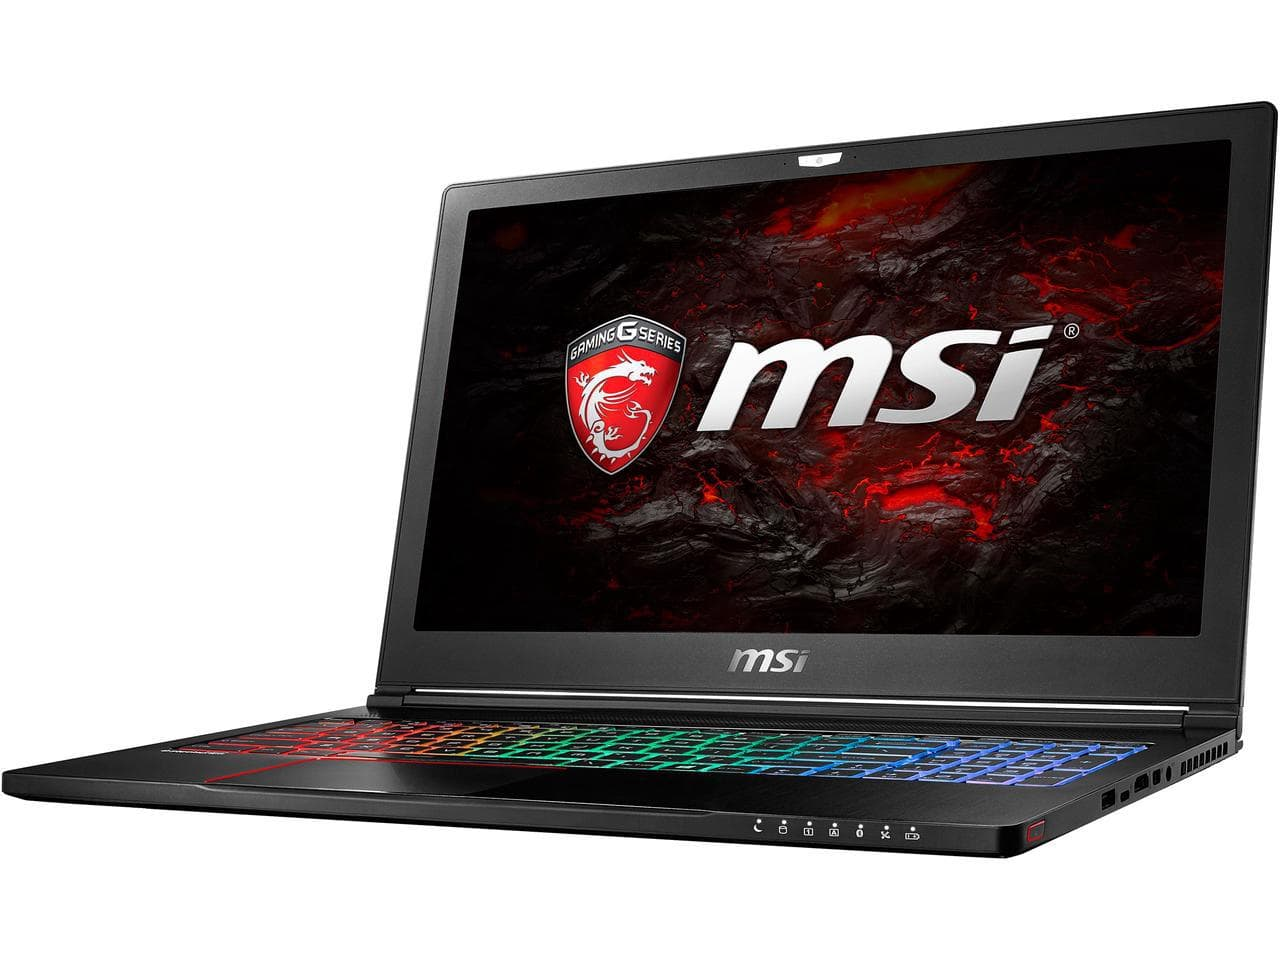 MSI GS63VR Stealth Pro-469 Laptop: 15.6'' FHD, i7-6700, GTX 1060 6GB, 16GB DDR4, 128GB SSD, 1TB HDD, Thunderbolt 3, Win10H + Dragon Fever GS Bundle @ 1149 AR + F/S $1149